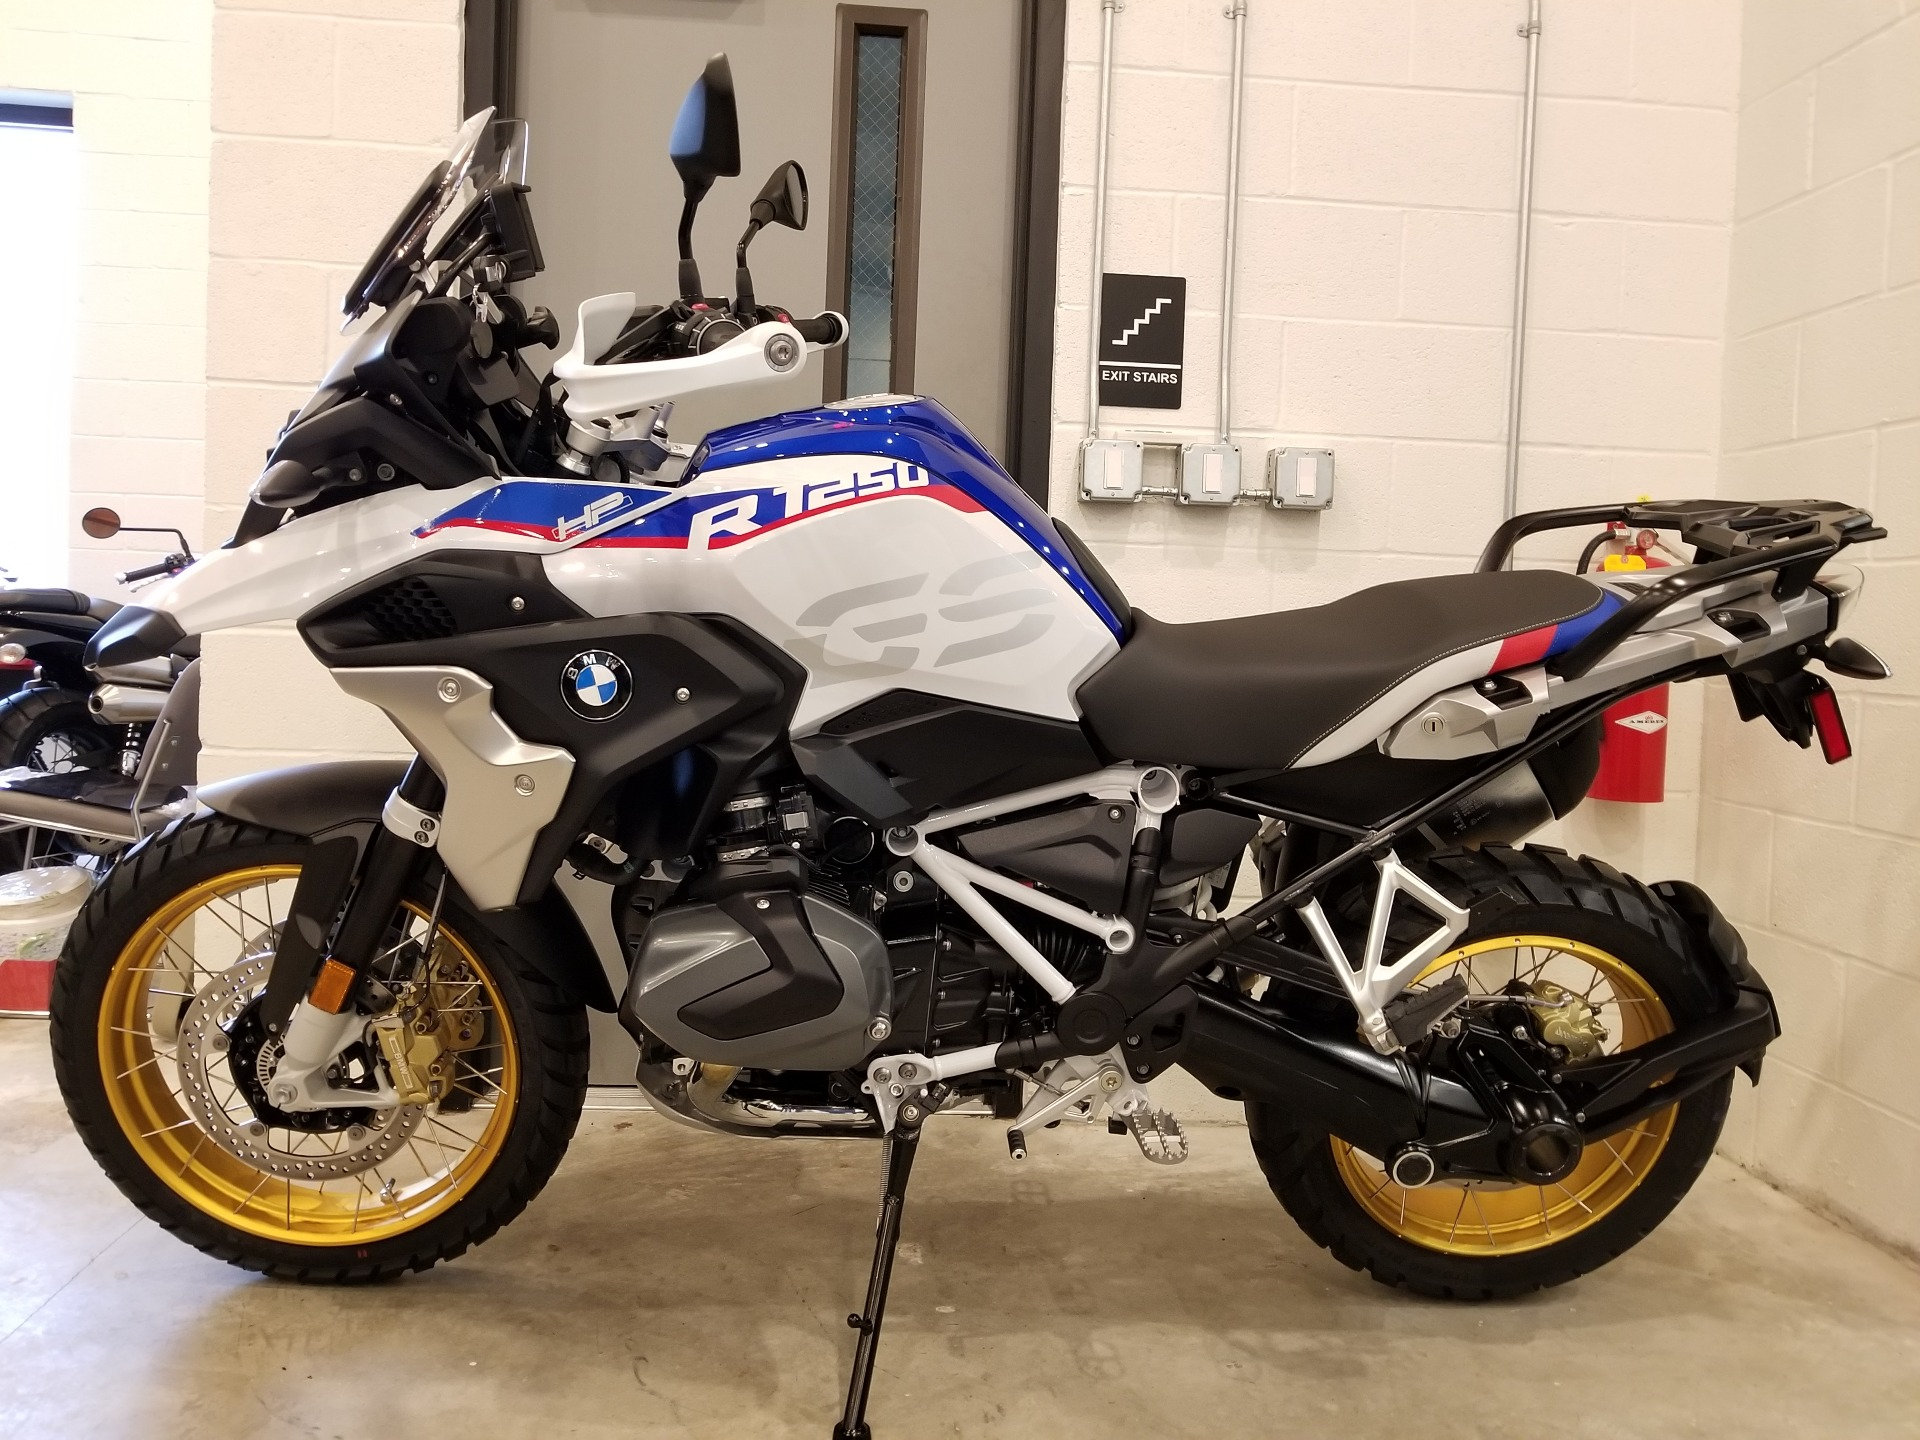 2019 BMW R 1250 GS in Port Clinton, Pennsylvania - Photo 2